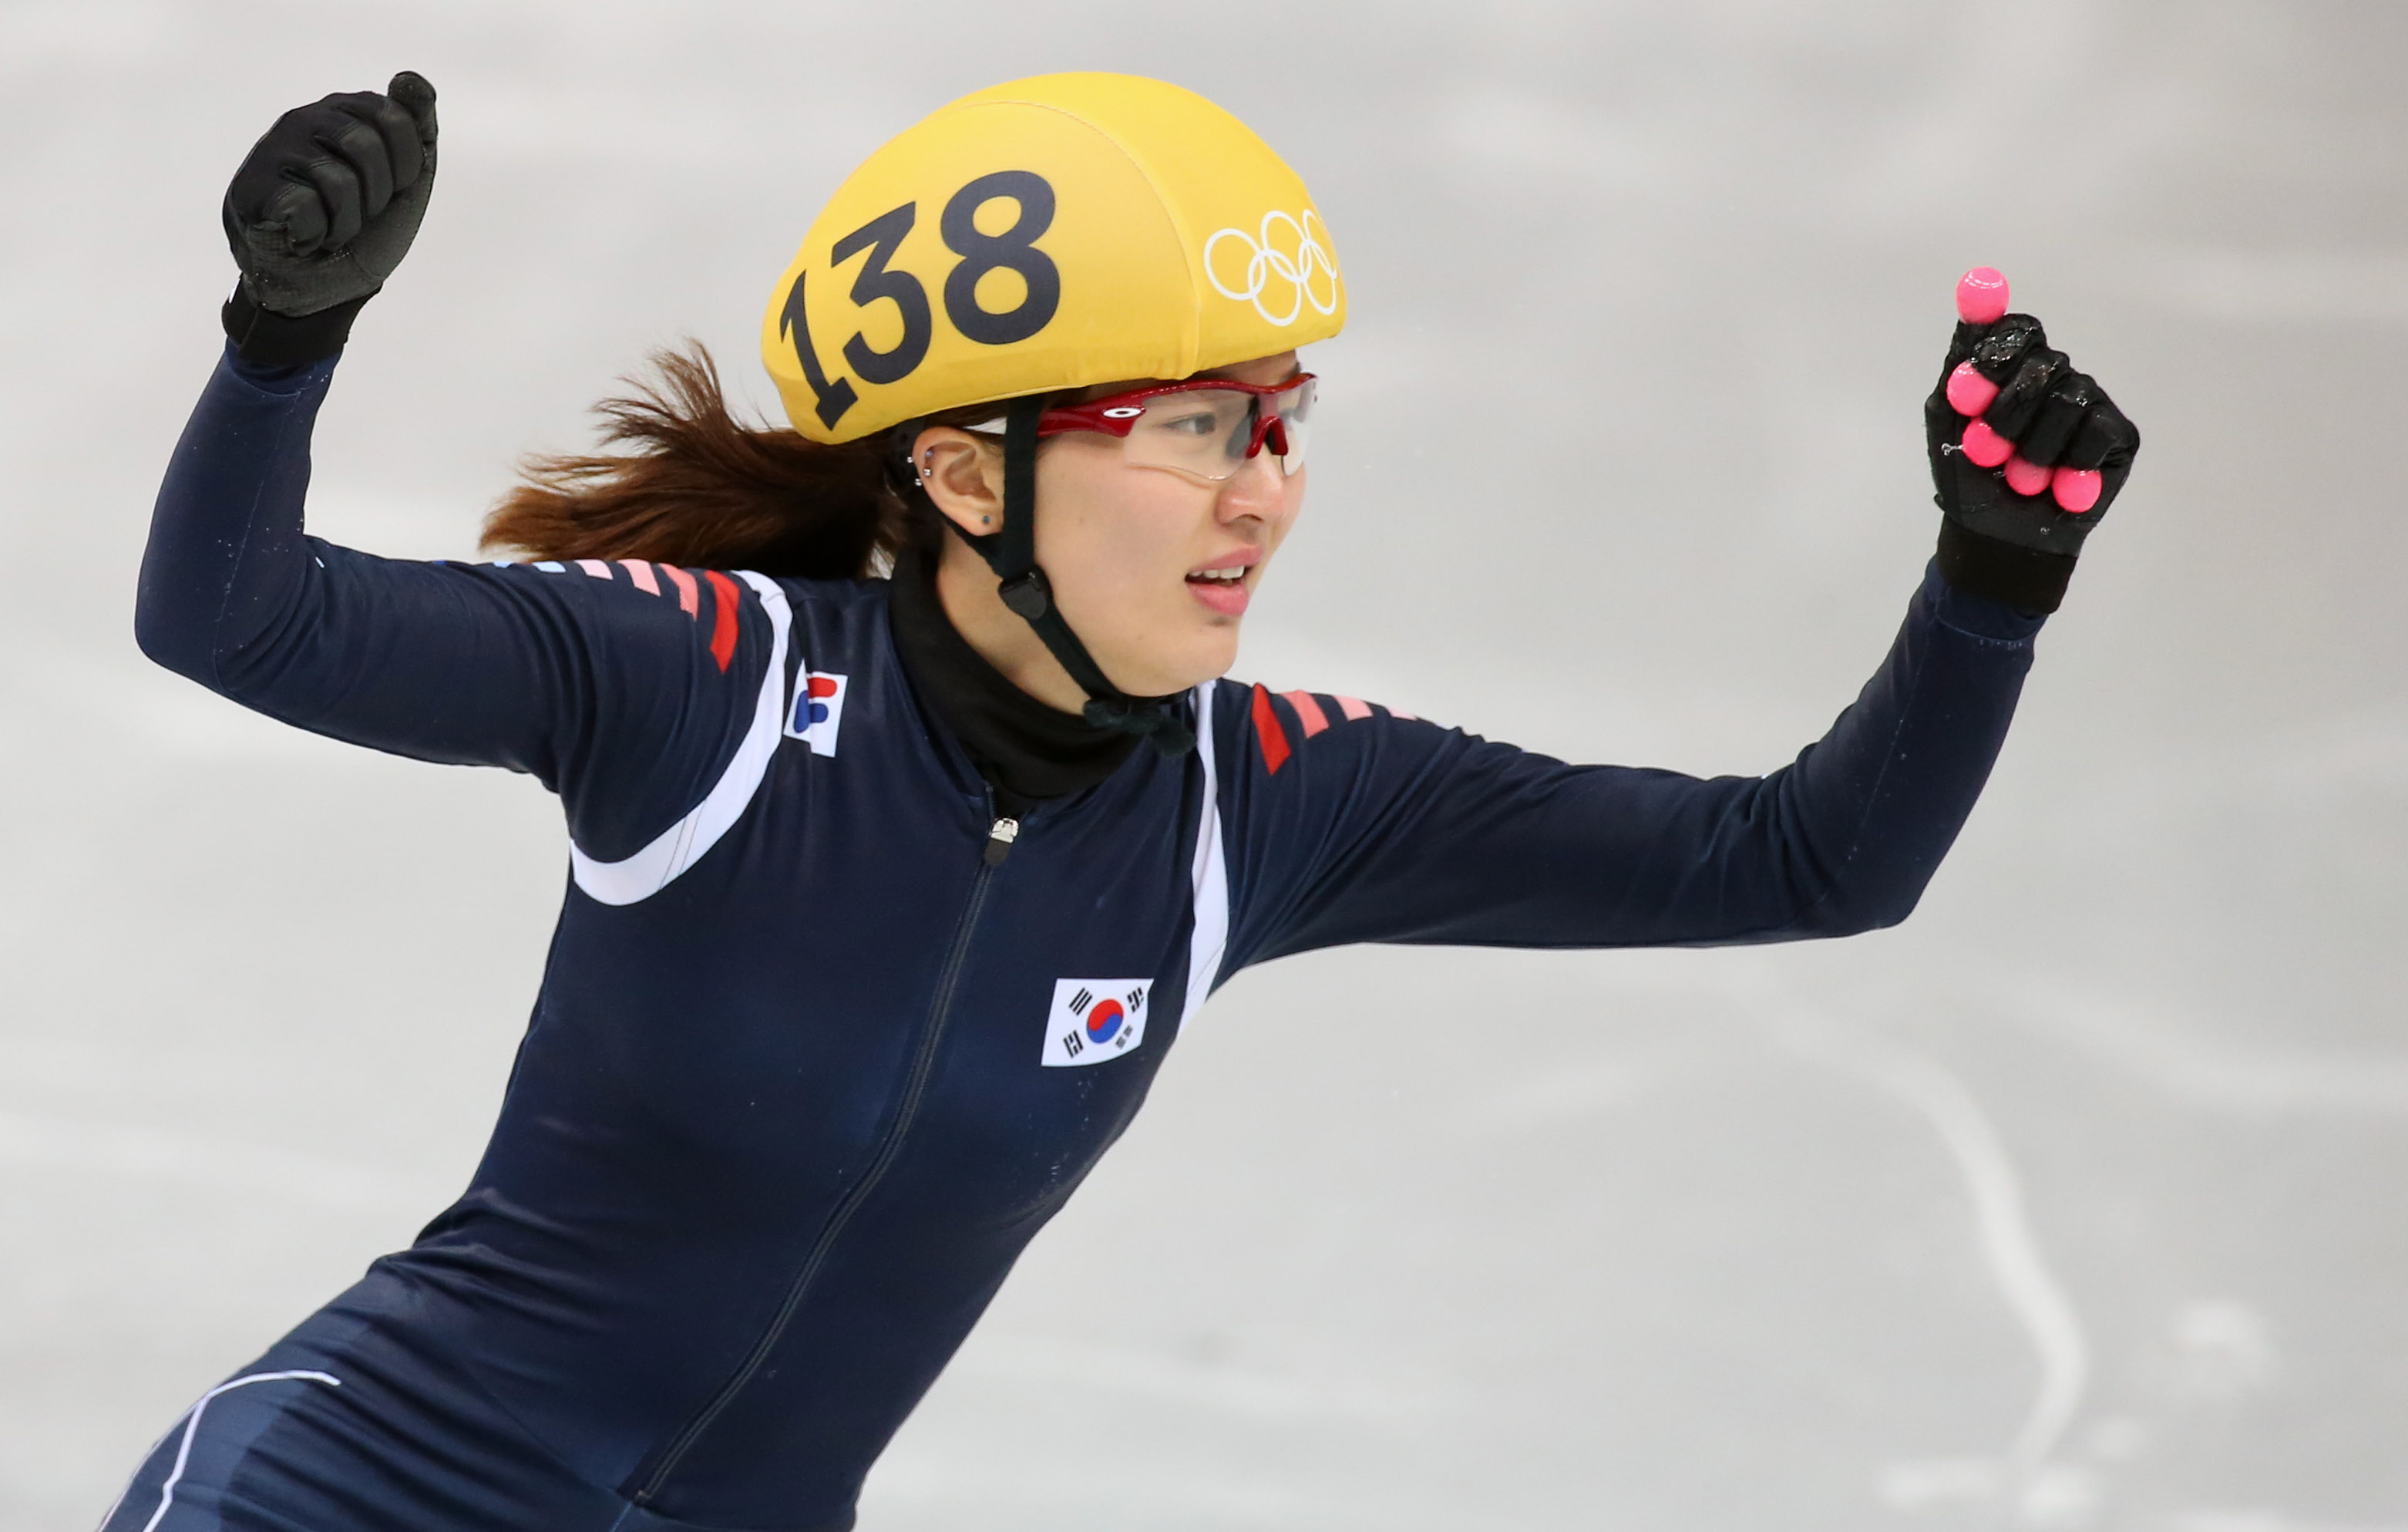 No one paid much attention to Park Seung-hi,  but she came through big time for Korea. (Yonhap)